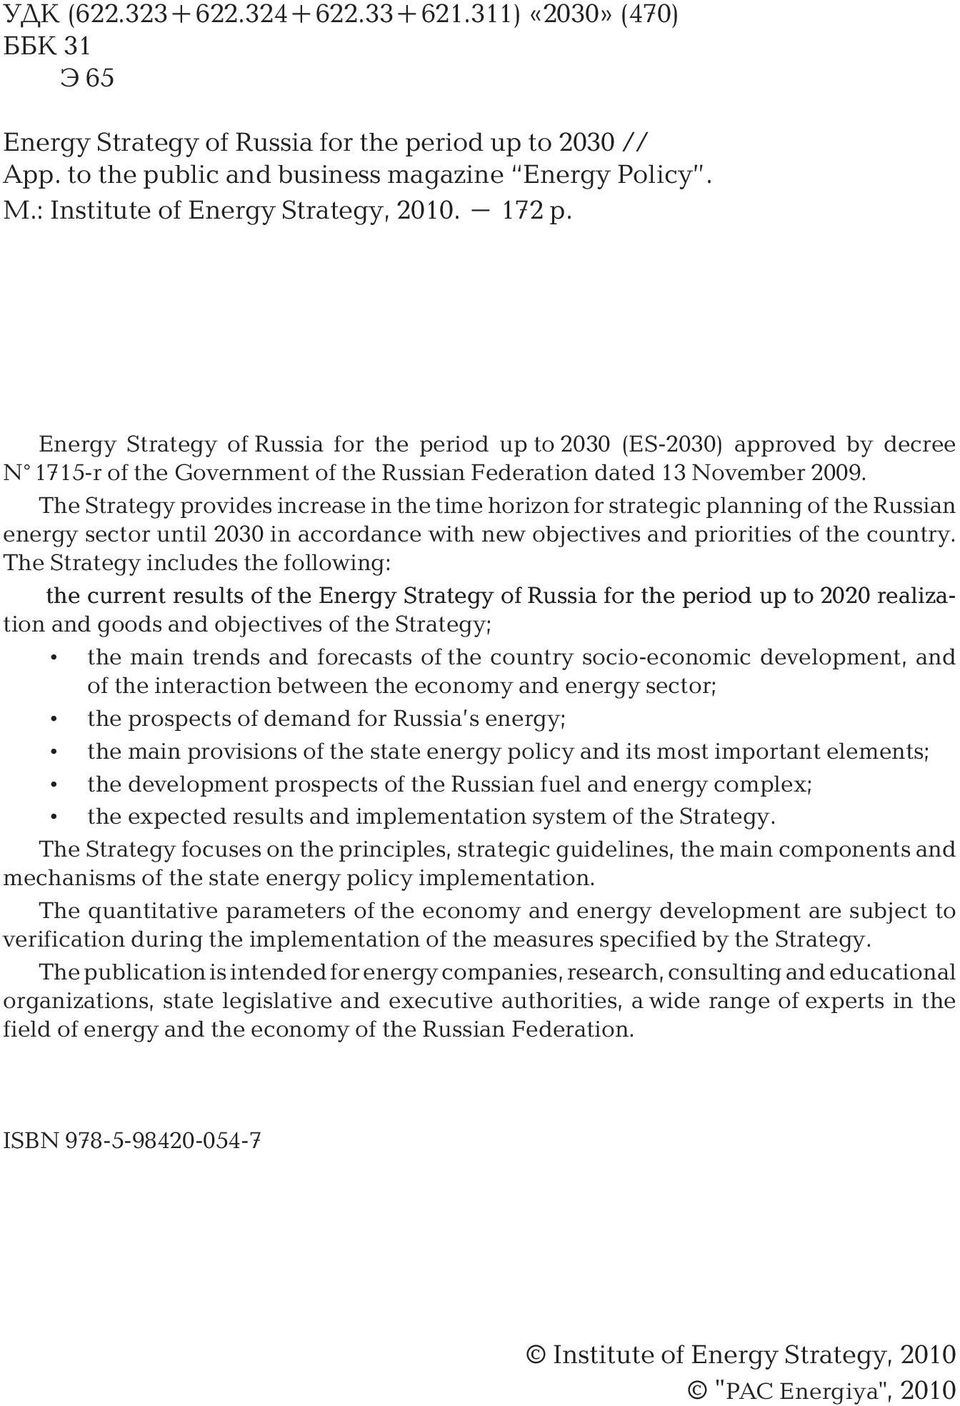 Energy Strategy of Russia for the period up to 2030 (ES-2030) approved by decree N 1715-r of the Government of the Russian Federation dated 13 November 2009.